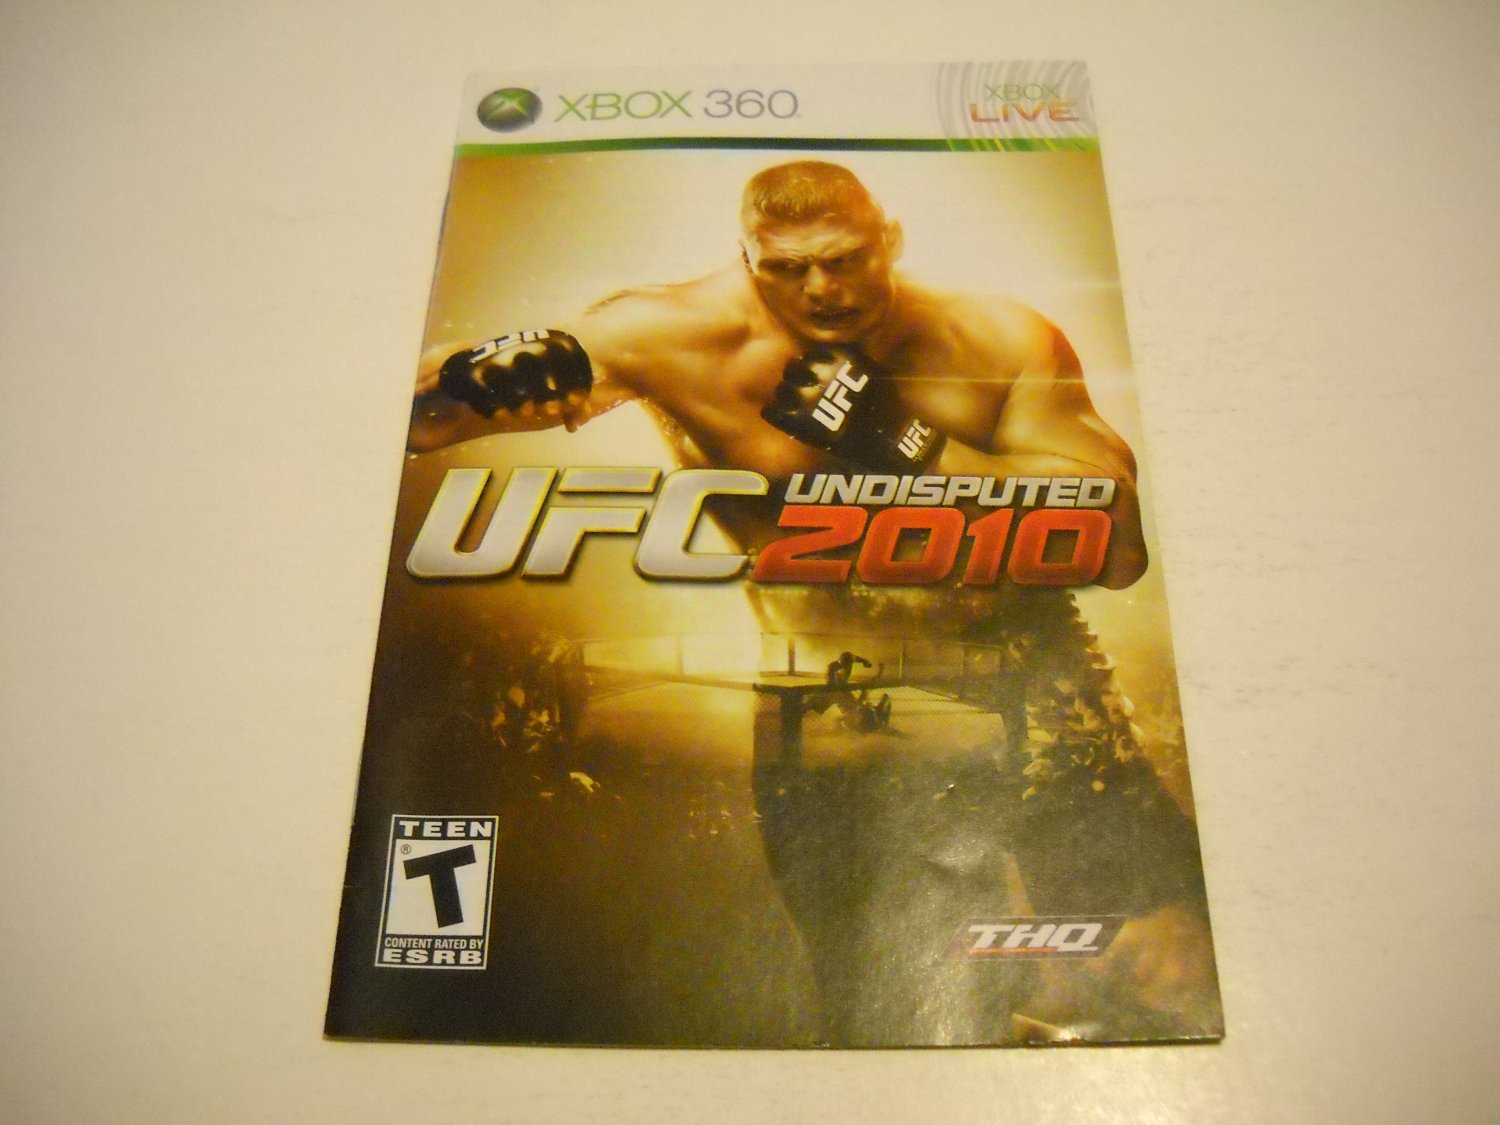 Manual ONLY ~  for UFC Undisputed 2010   - Xbox 360 Instruction Booklet